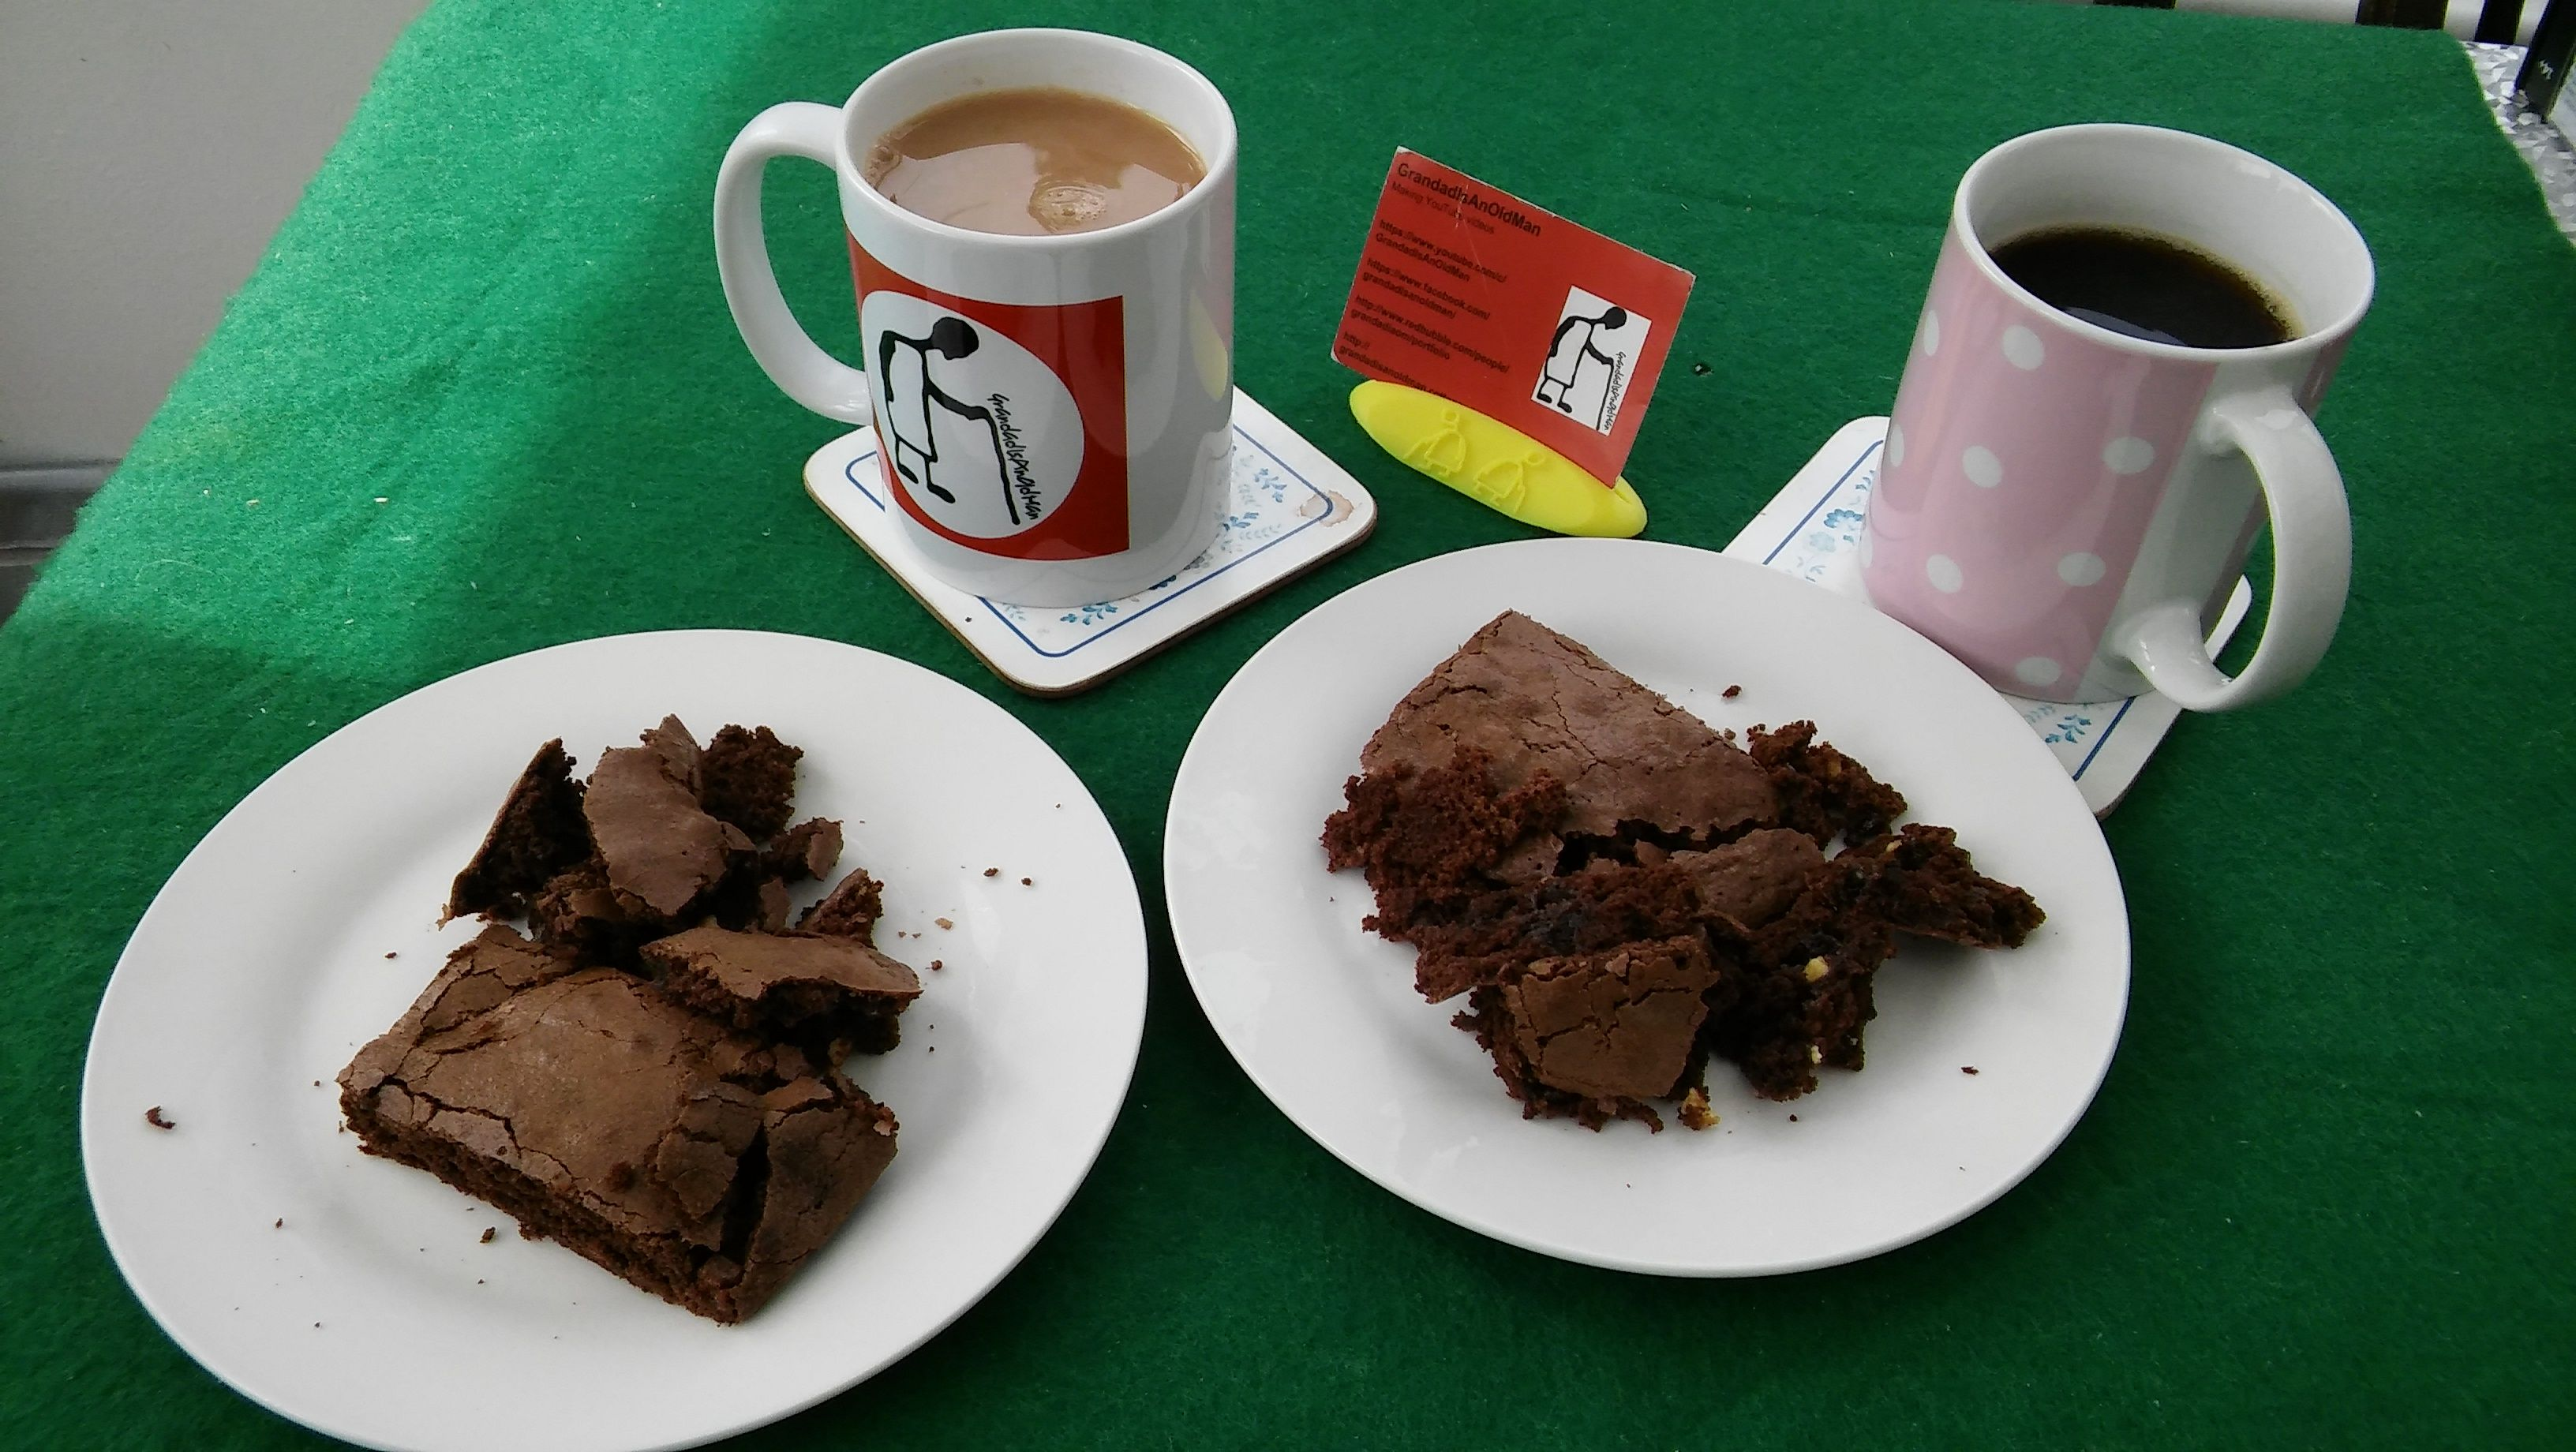 #StayAtHome #grandadisanoldman #grandad #grandadiaom #GIAOM #Tea #Coffee #ChocolateBrownies